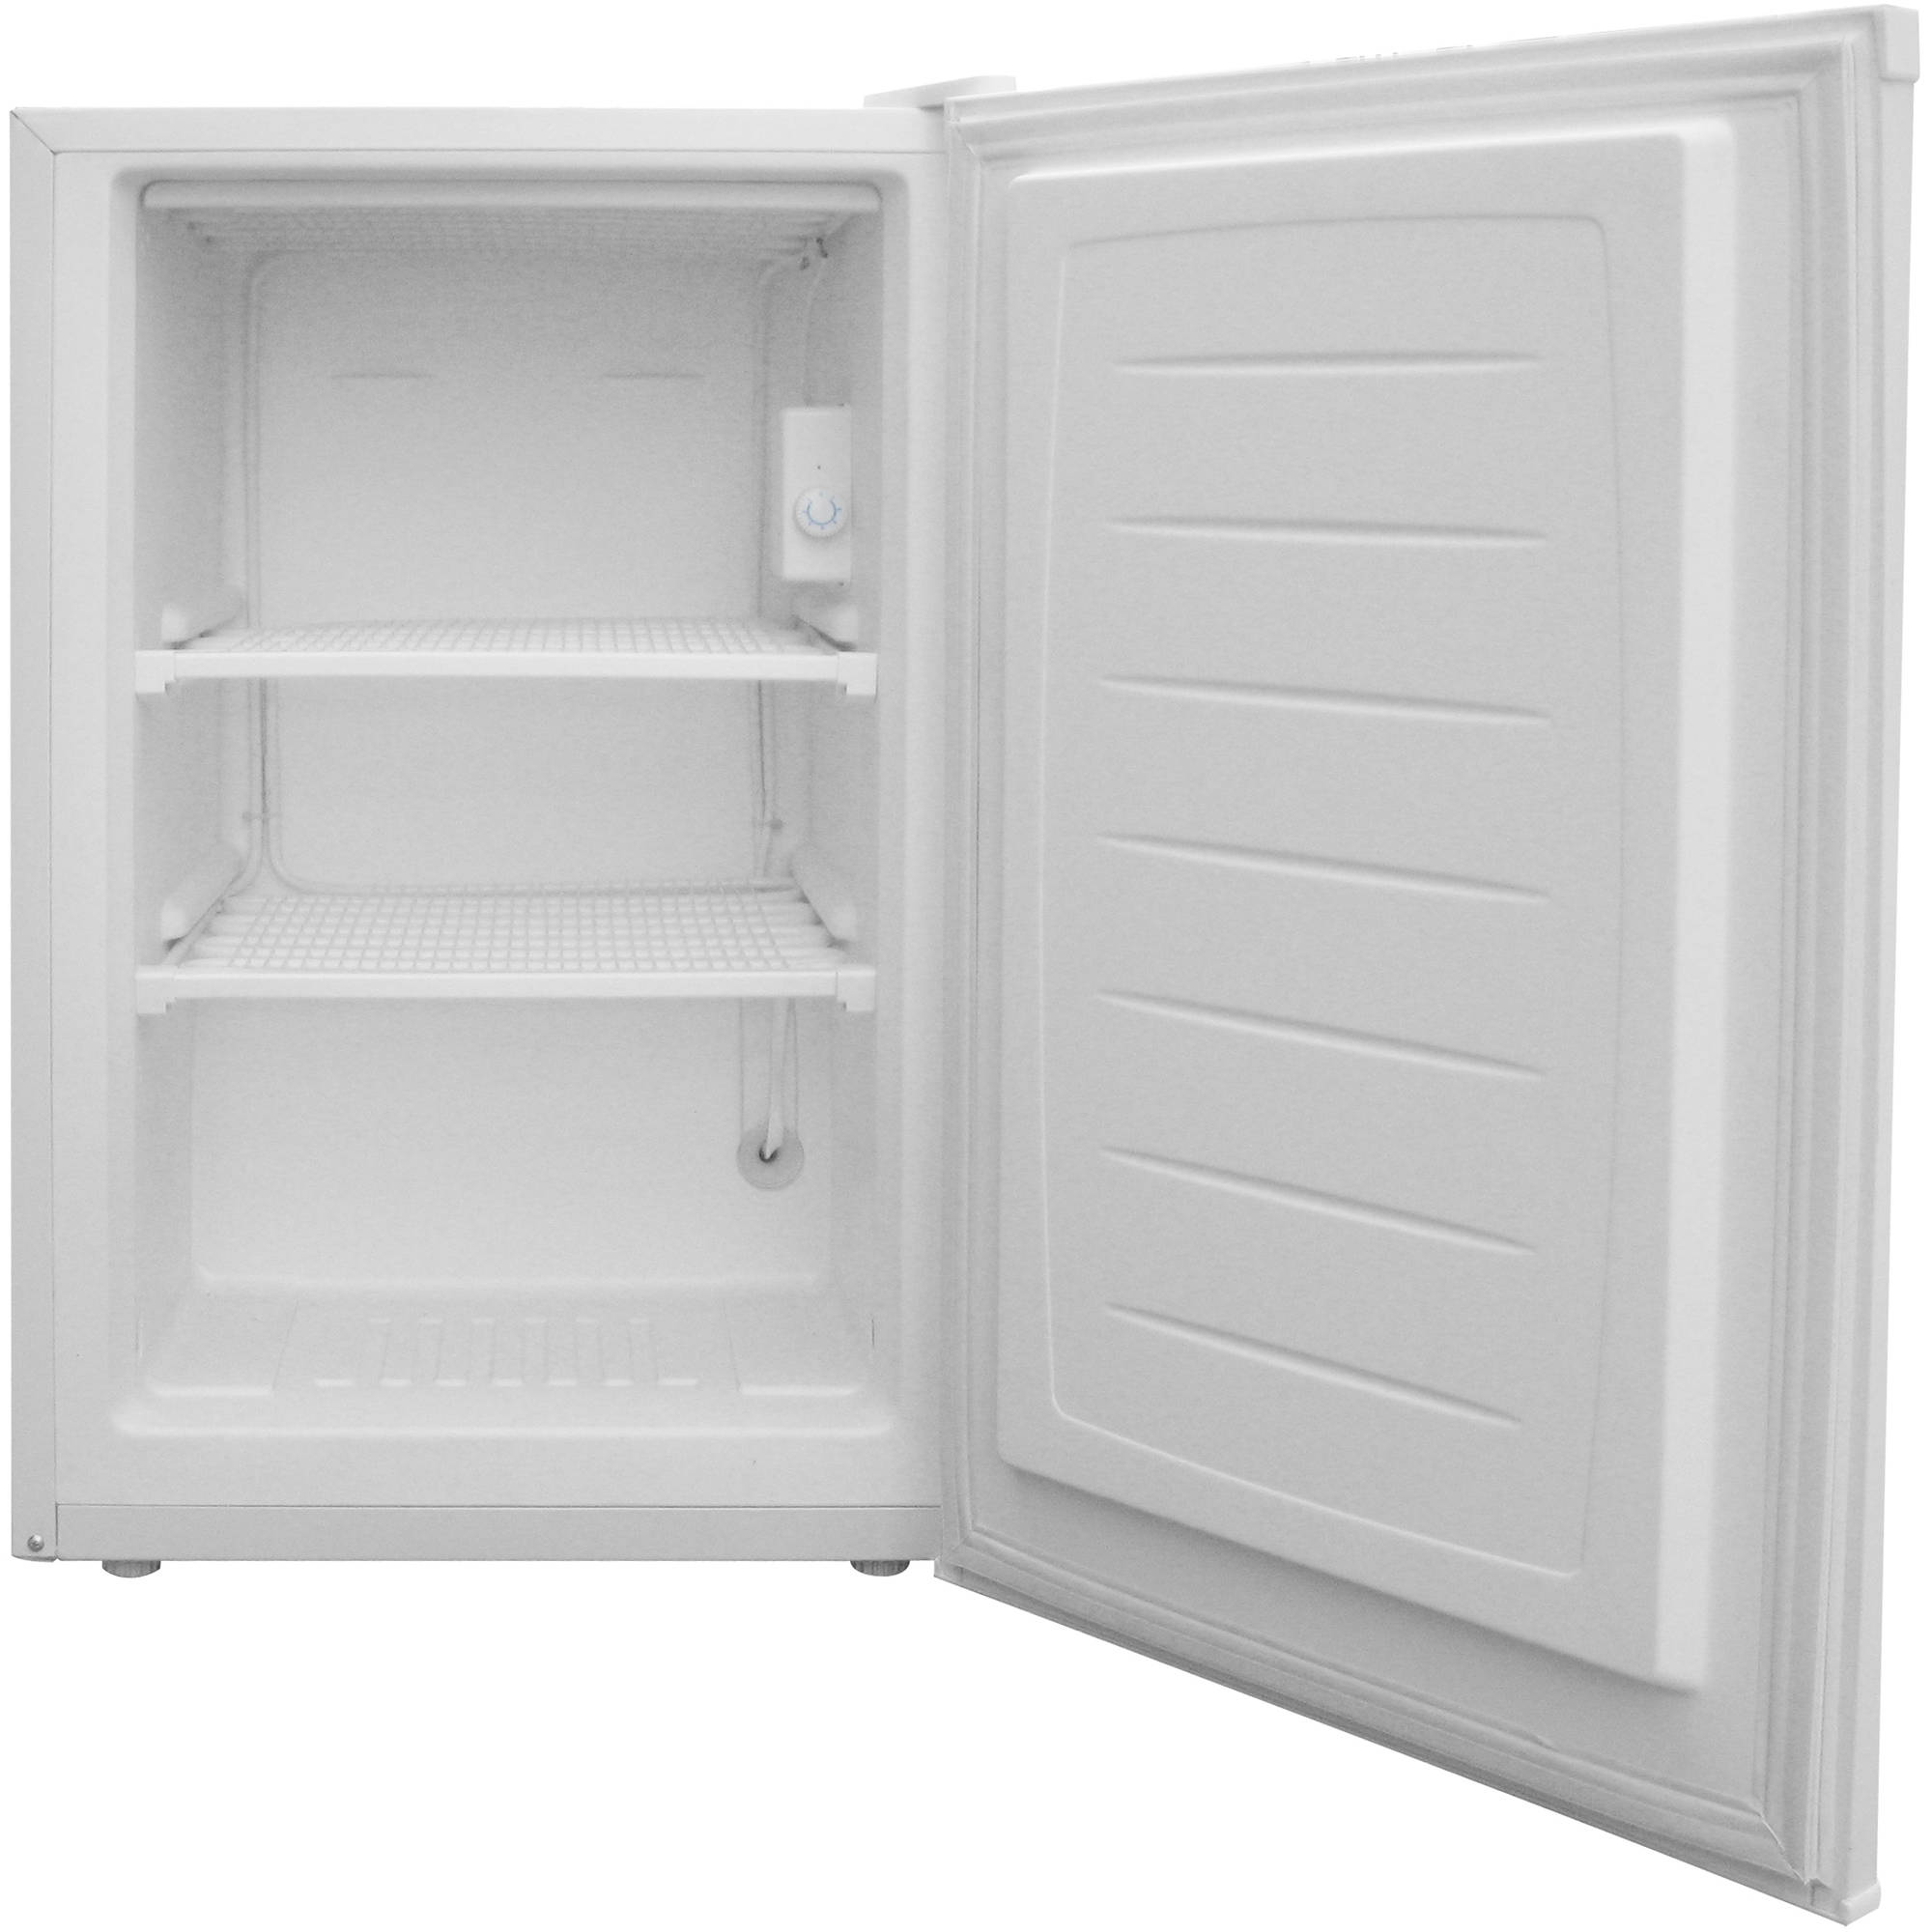 3.0 Front Load Freezer White